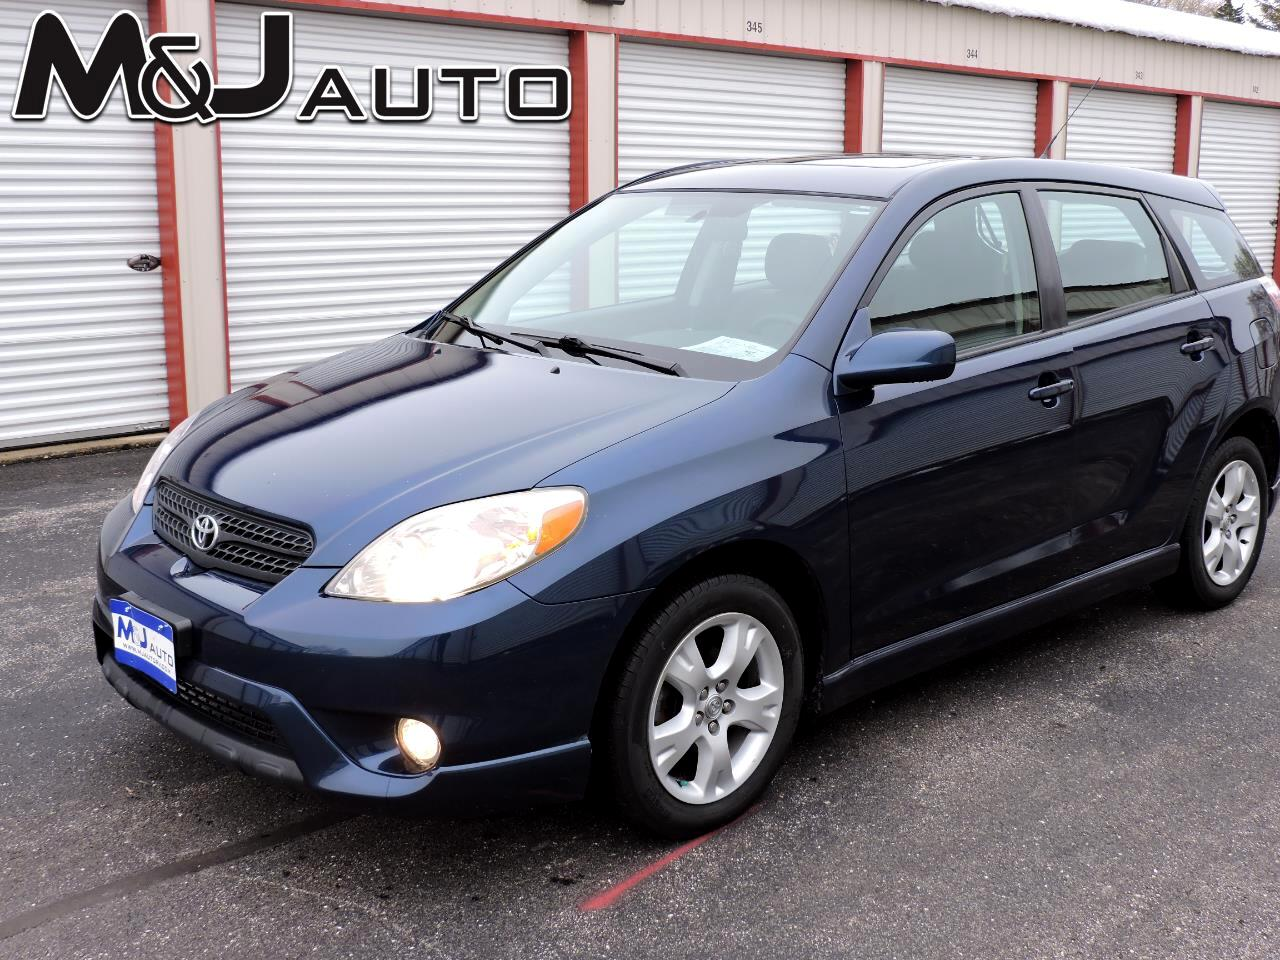 Toyota Matrix 5dr Wgn XR Auto (Natl) 2006